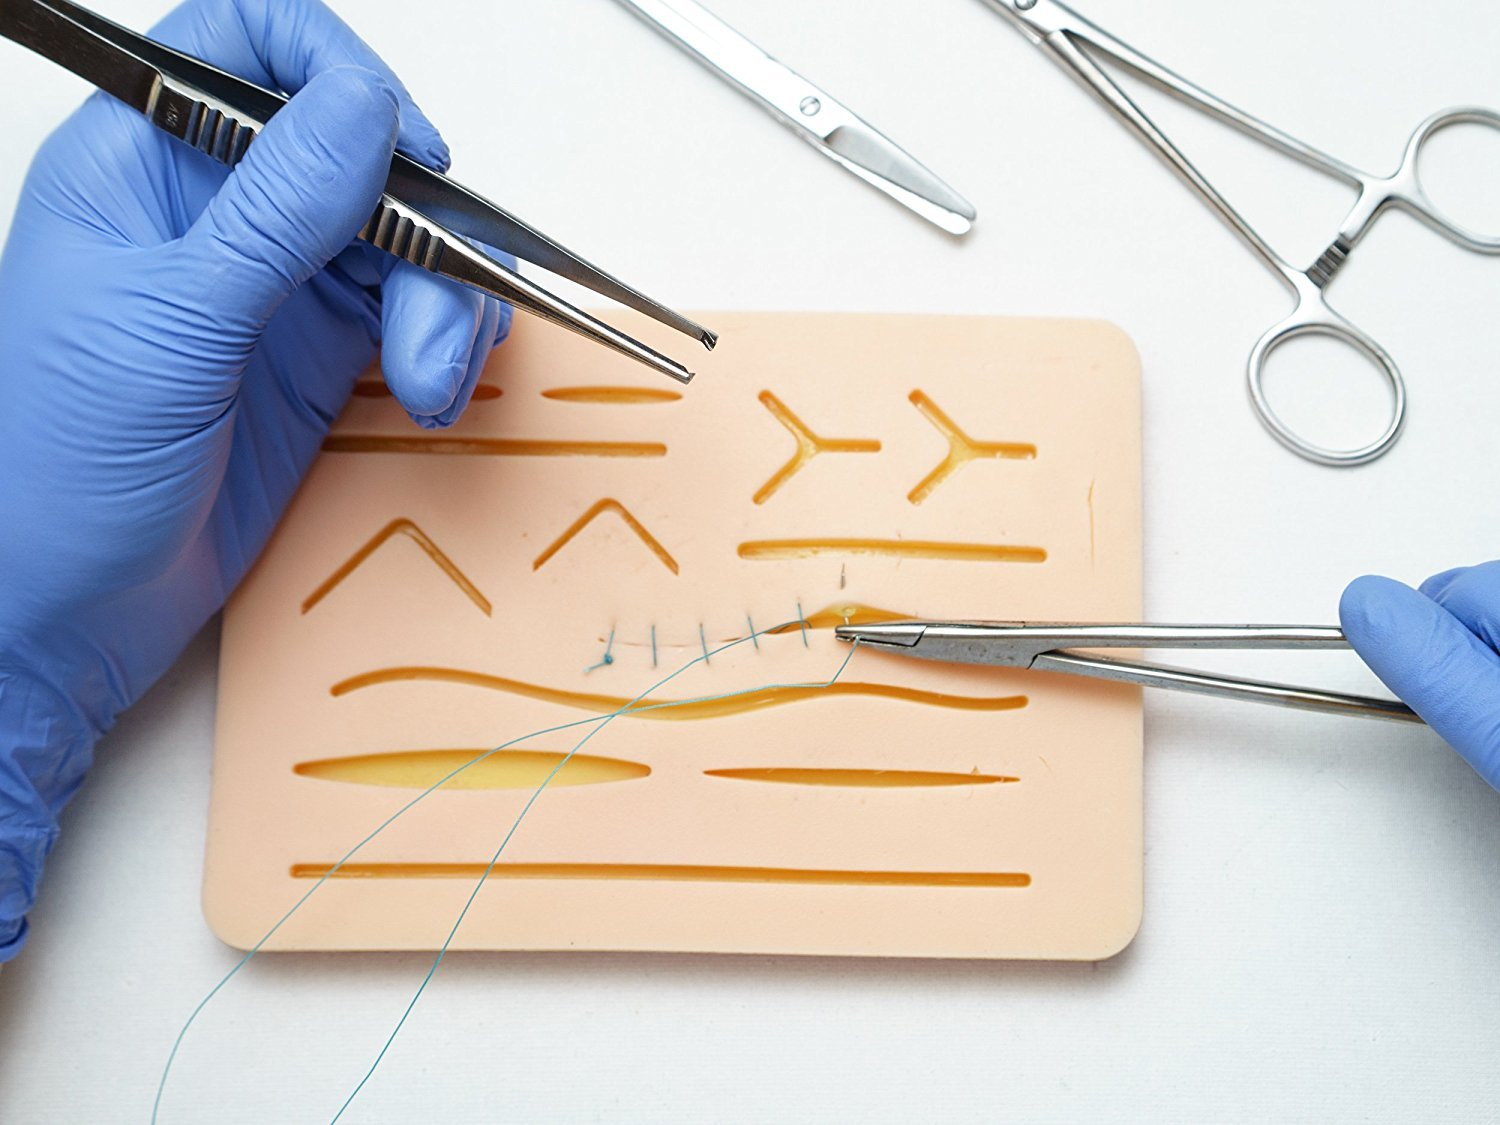 Suture Practice Pad with incisions 1